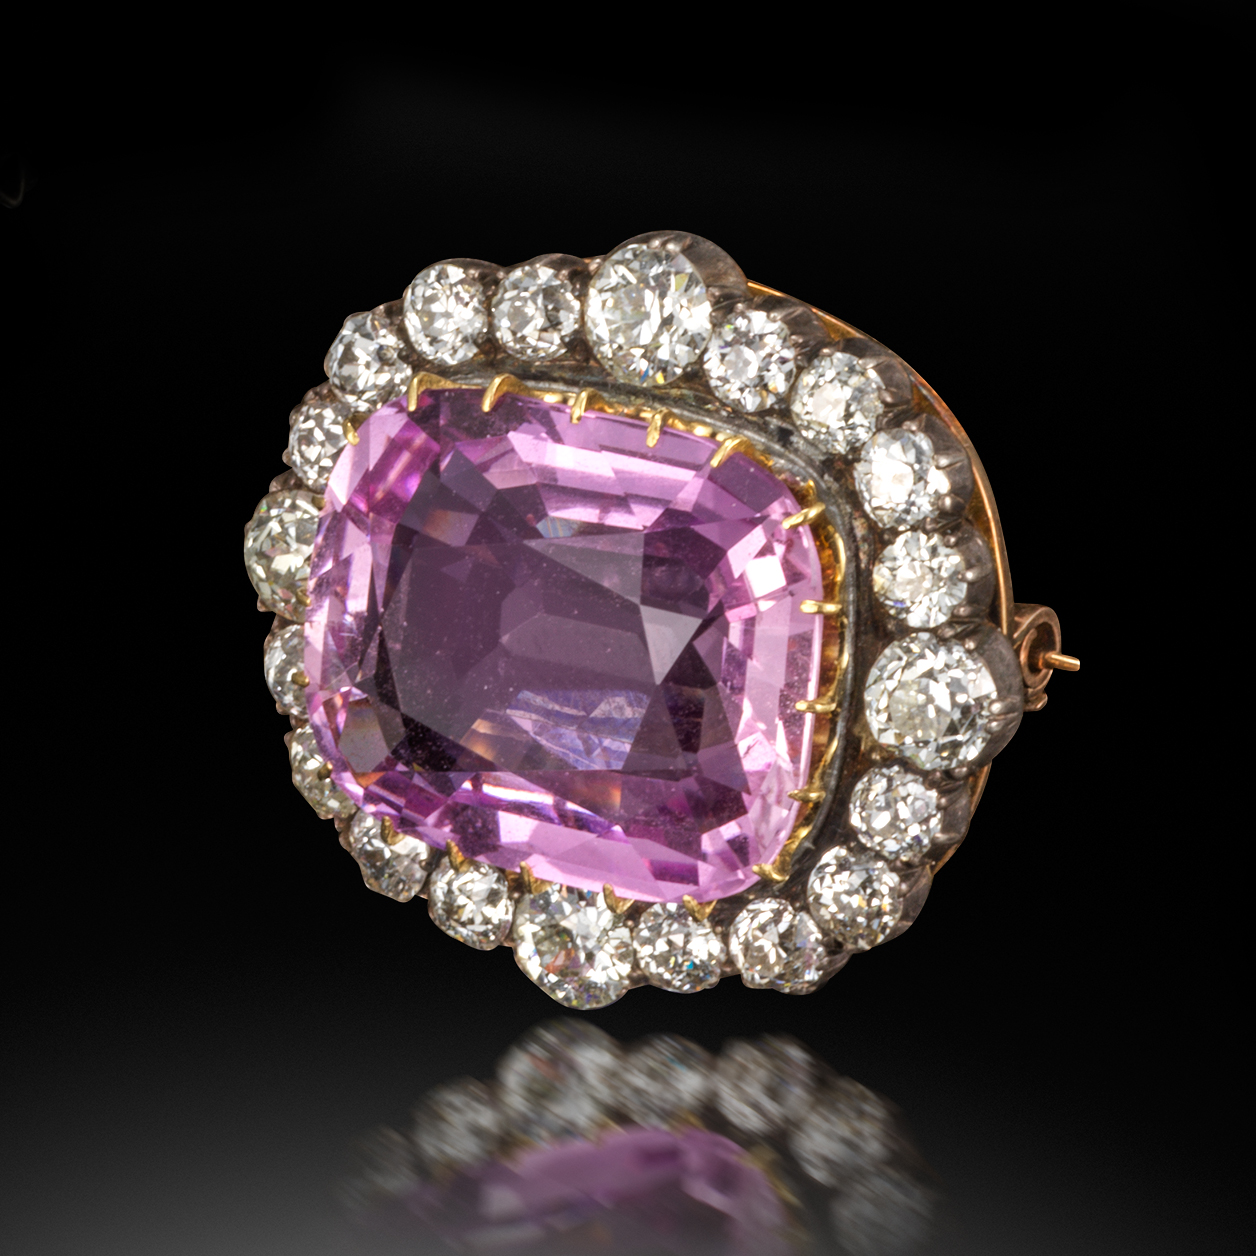 A Victorian pink topaz and diamond brooch